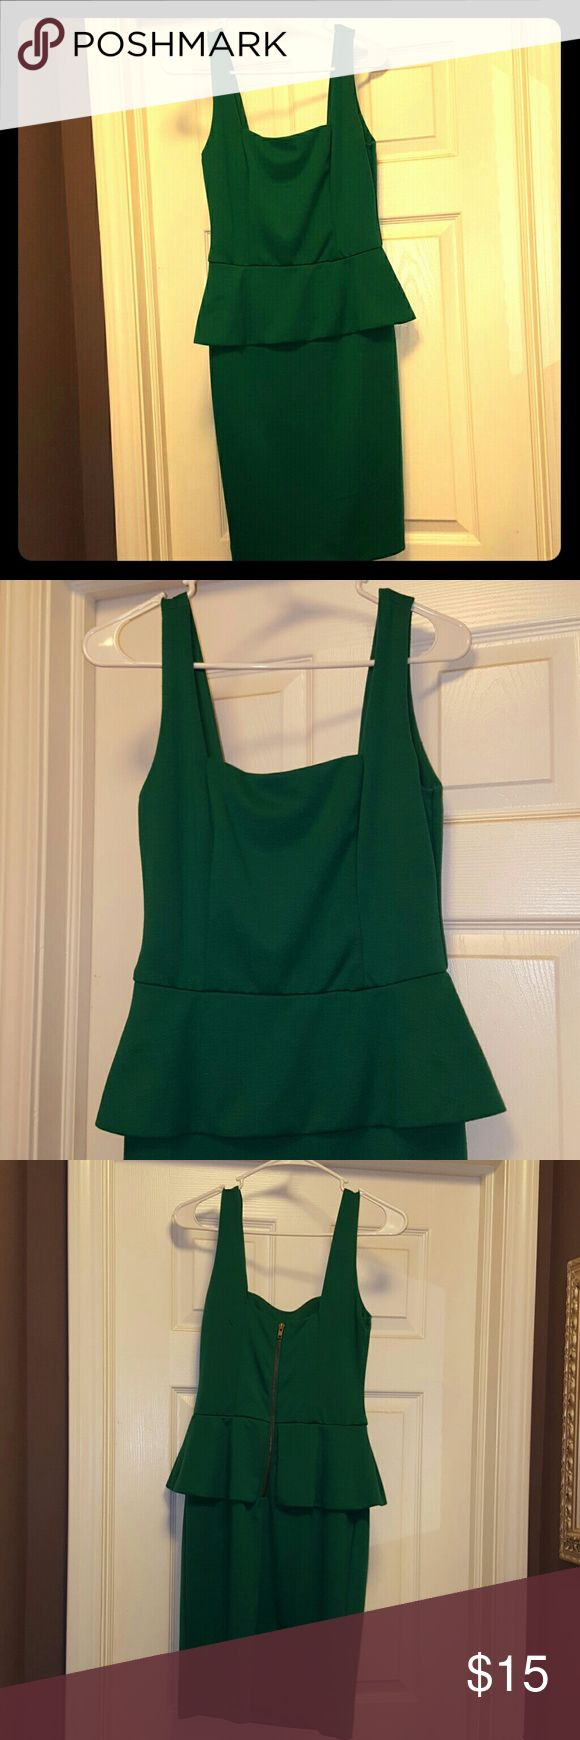 Dress Kelly green cotton knee length dress. Appears as top and skirt. Perfect for work, dress it up or dress it down. Zippered back. Good condition. Make an offer :) ECI Dresses Asymmetrical